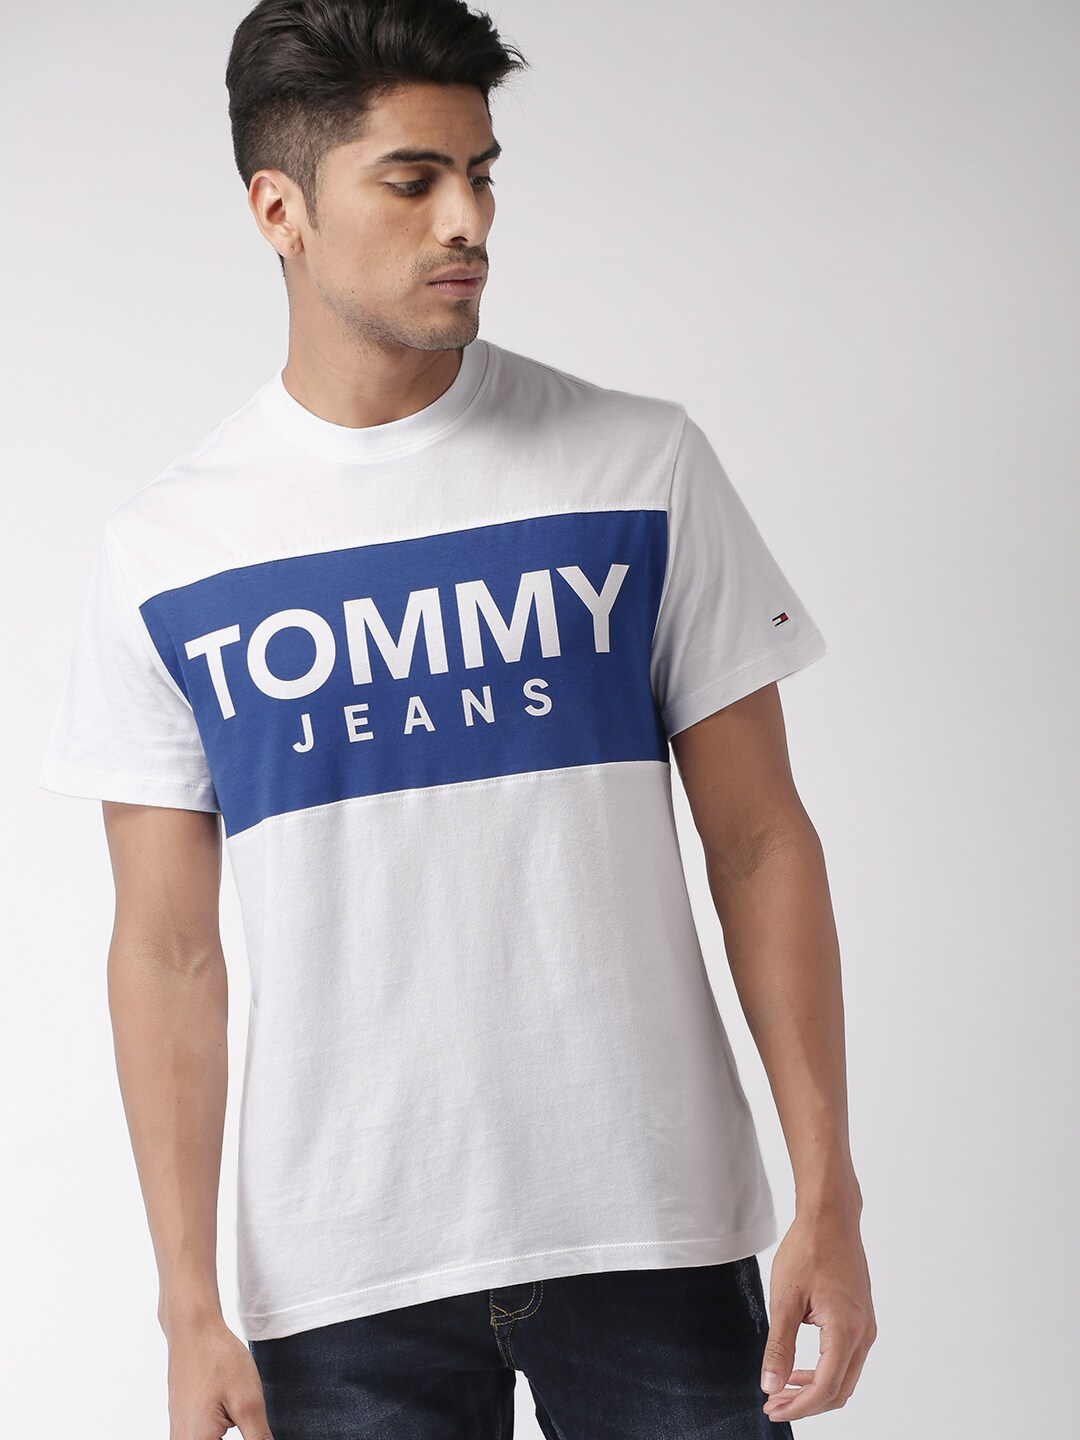 86d011d27bc0 Tommy Hilfiger Denim Tshirts - Buy Tommy Hilfiger Denim Tshirts online in  India